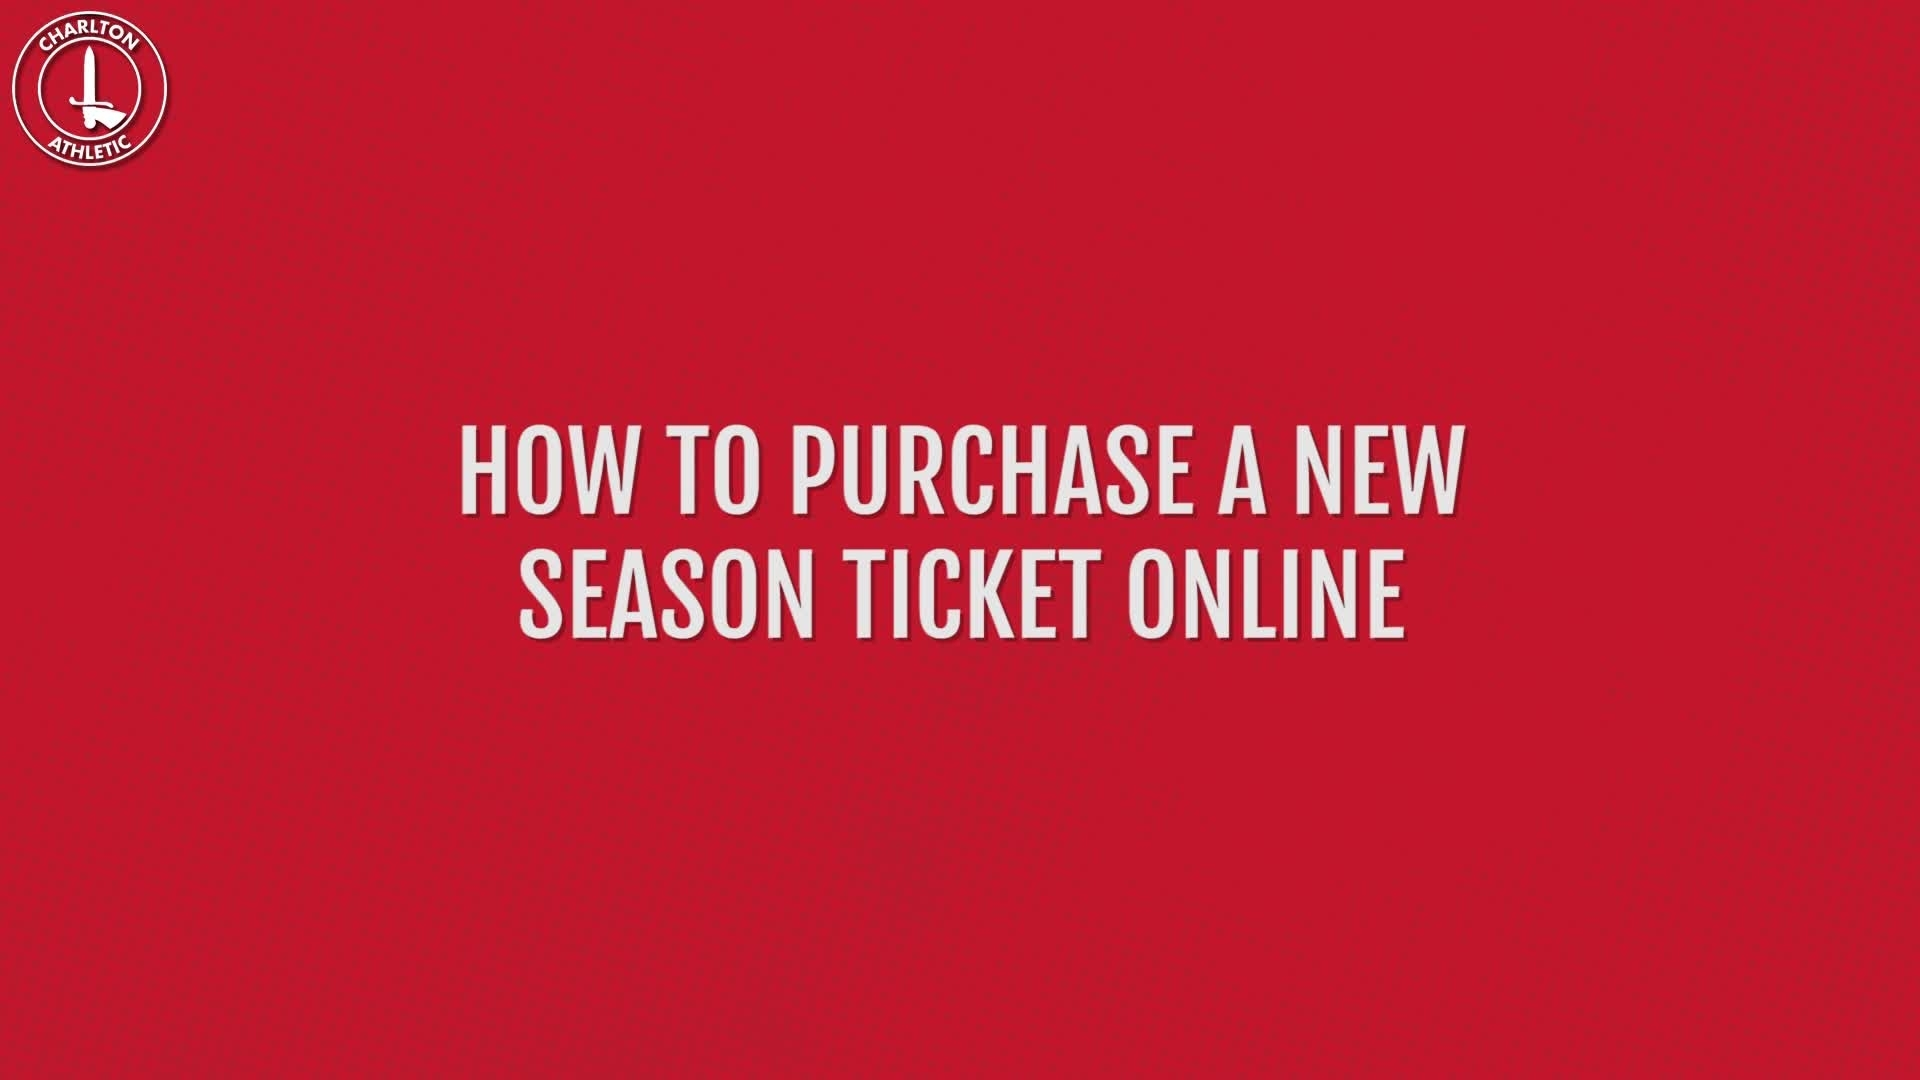 How to purchase your 2019/20 season ticket online